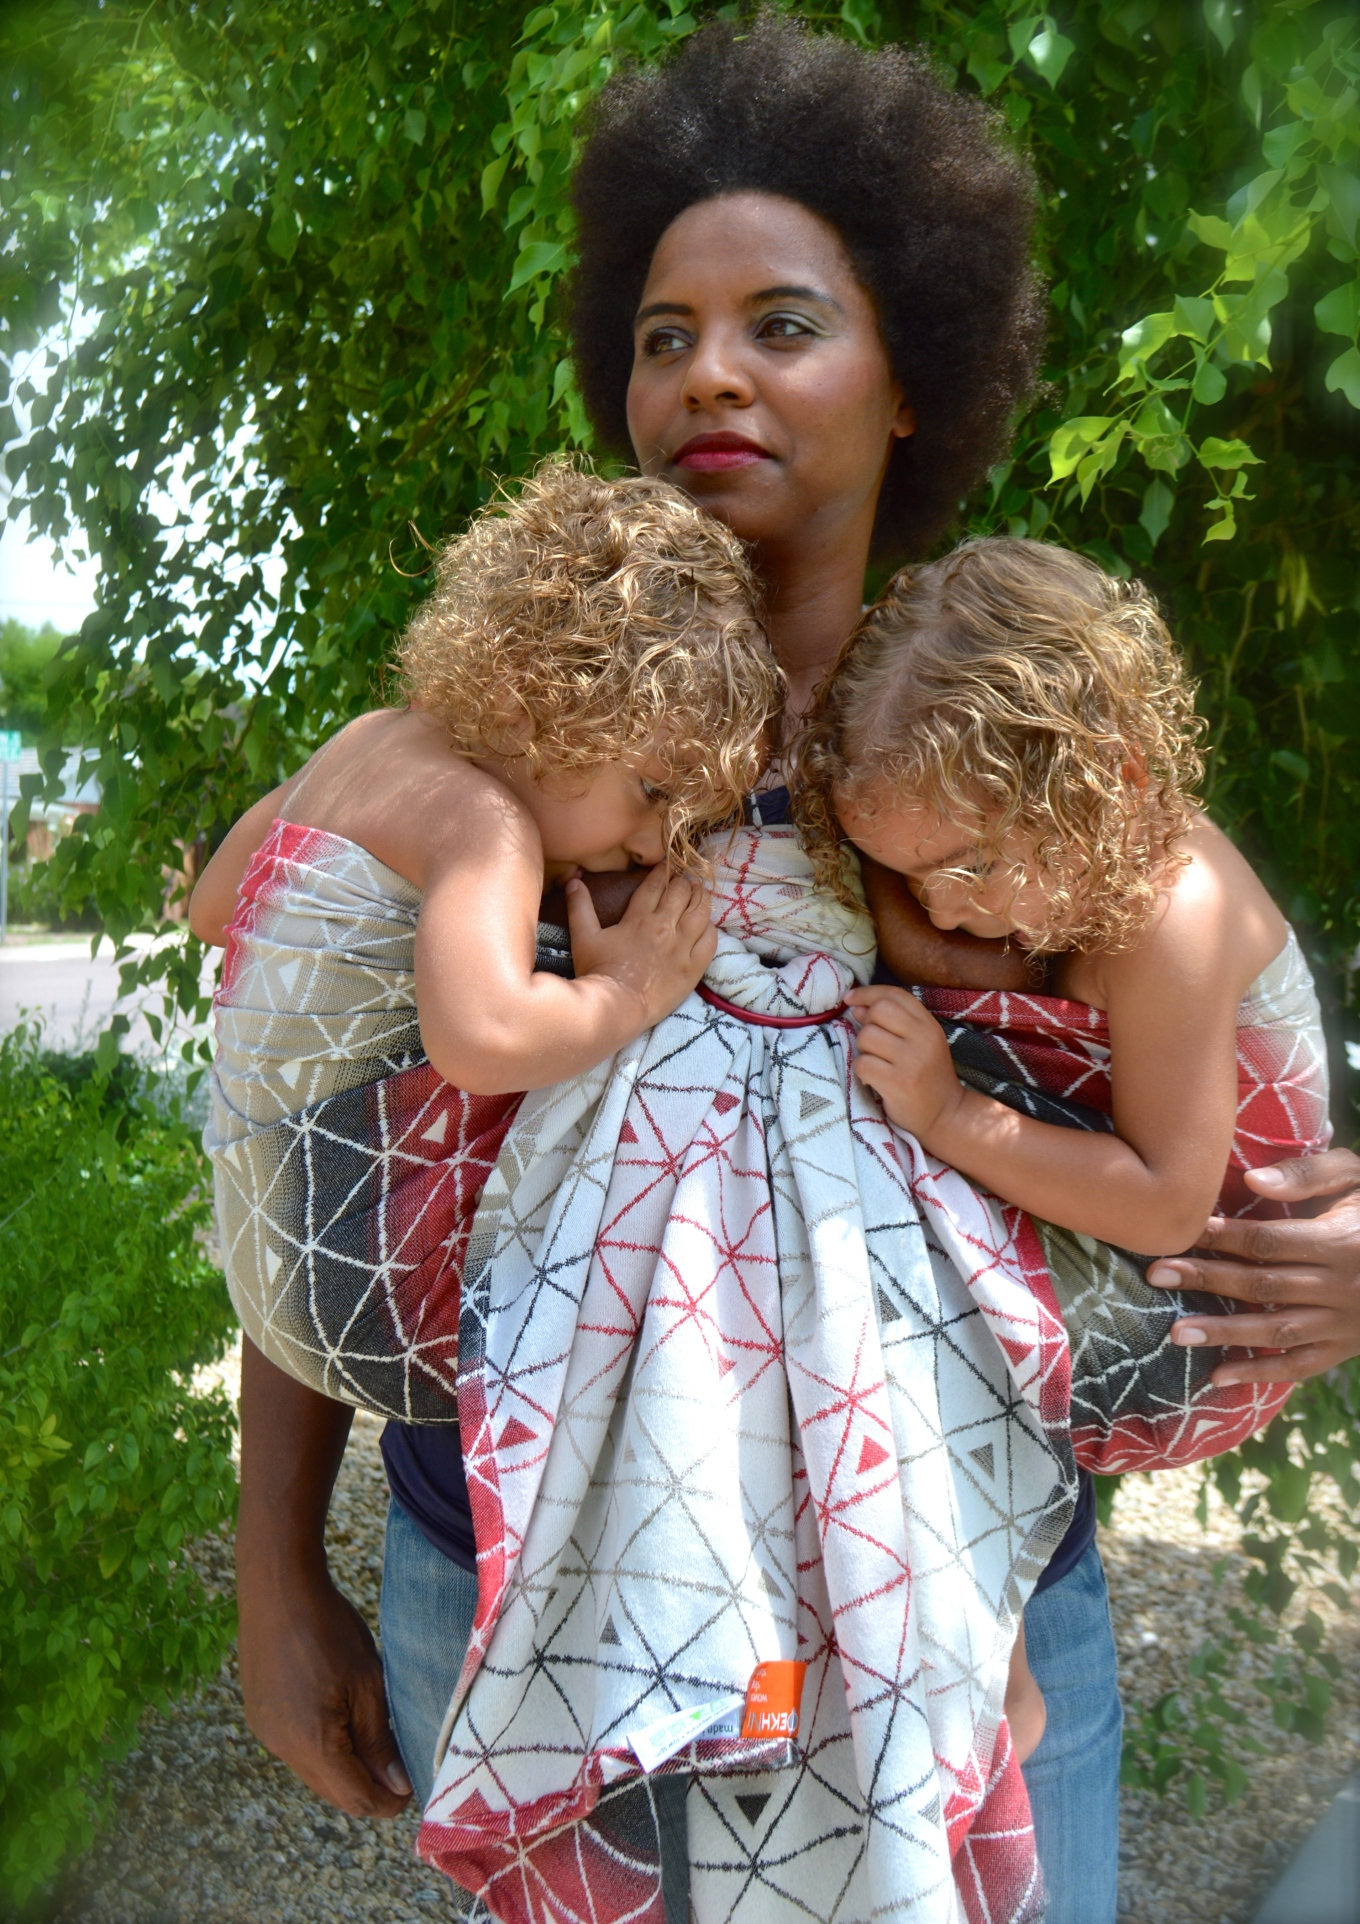 Proud African American Momma stands tall with tall natural afro and red lipstick. Twin toddlers are shirtless, blond curls free, nursing in tandem hip carry. The wrap is gradient colors of red, black, brown, and white against a dominant white reverse side. The large sling rings are red.